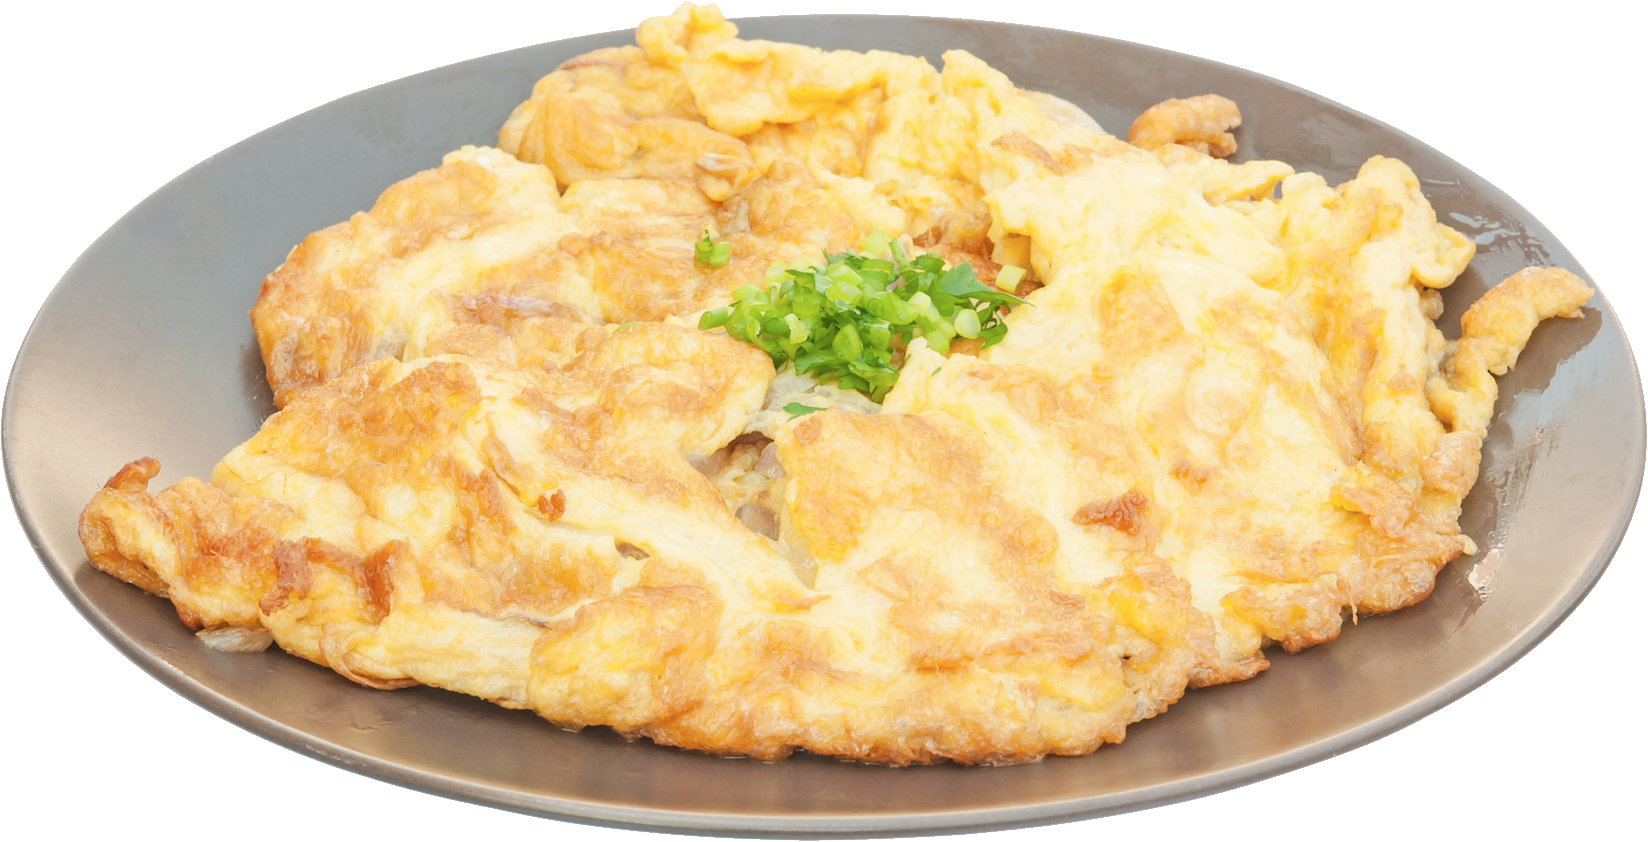 Omelette PNG images free download.